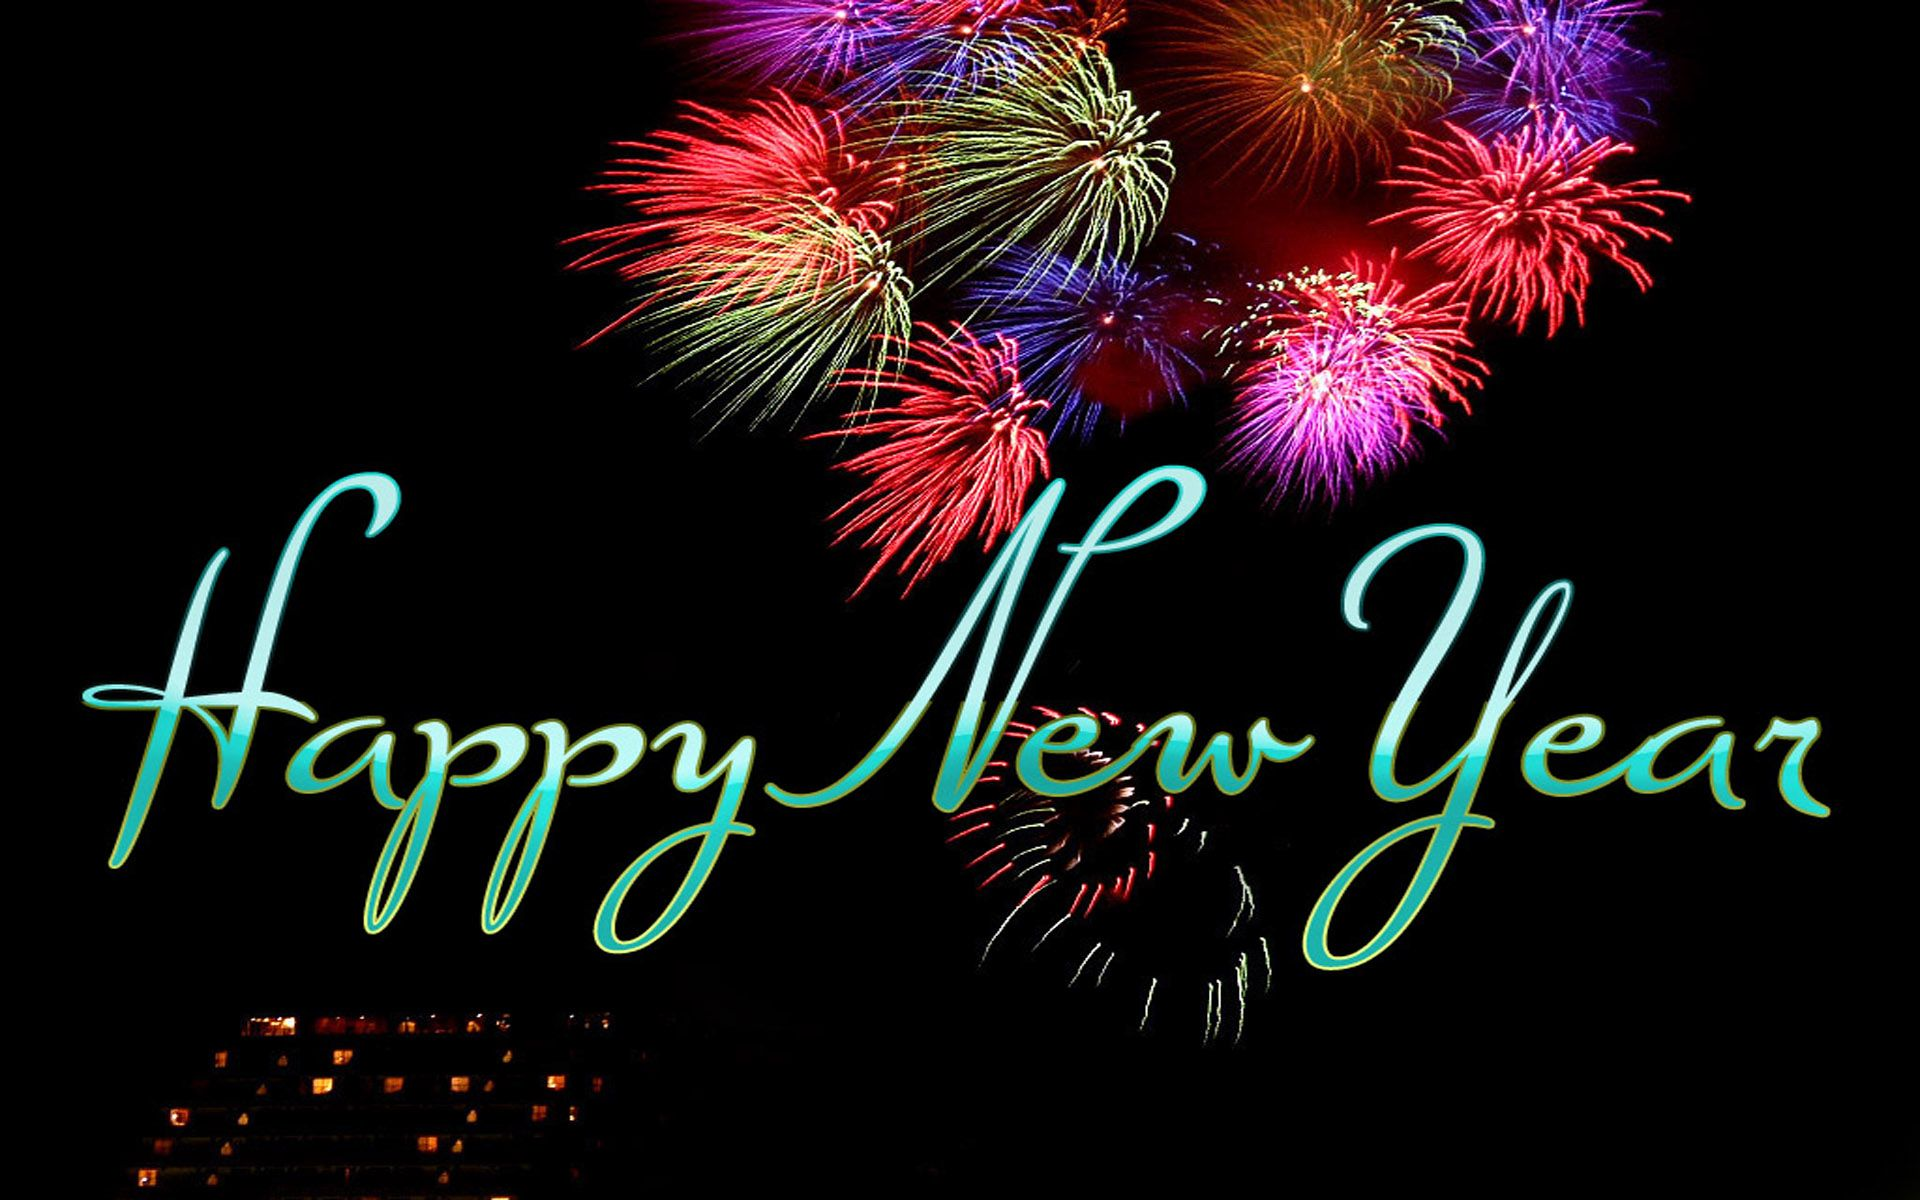 Naafa fat bastardos shocking new years announcement republican marvelous new year wallpaper happy new year 2014 kristyandbryce Image collections